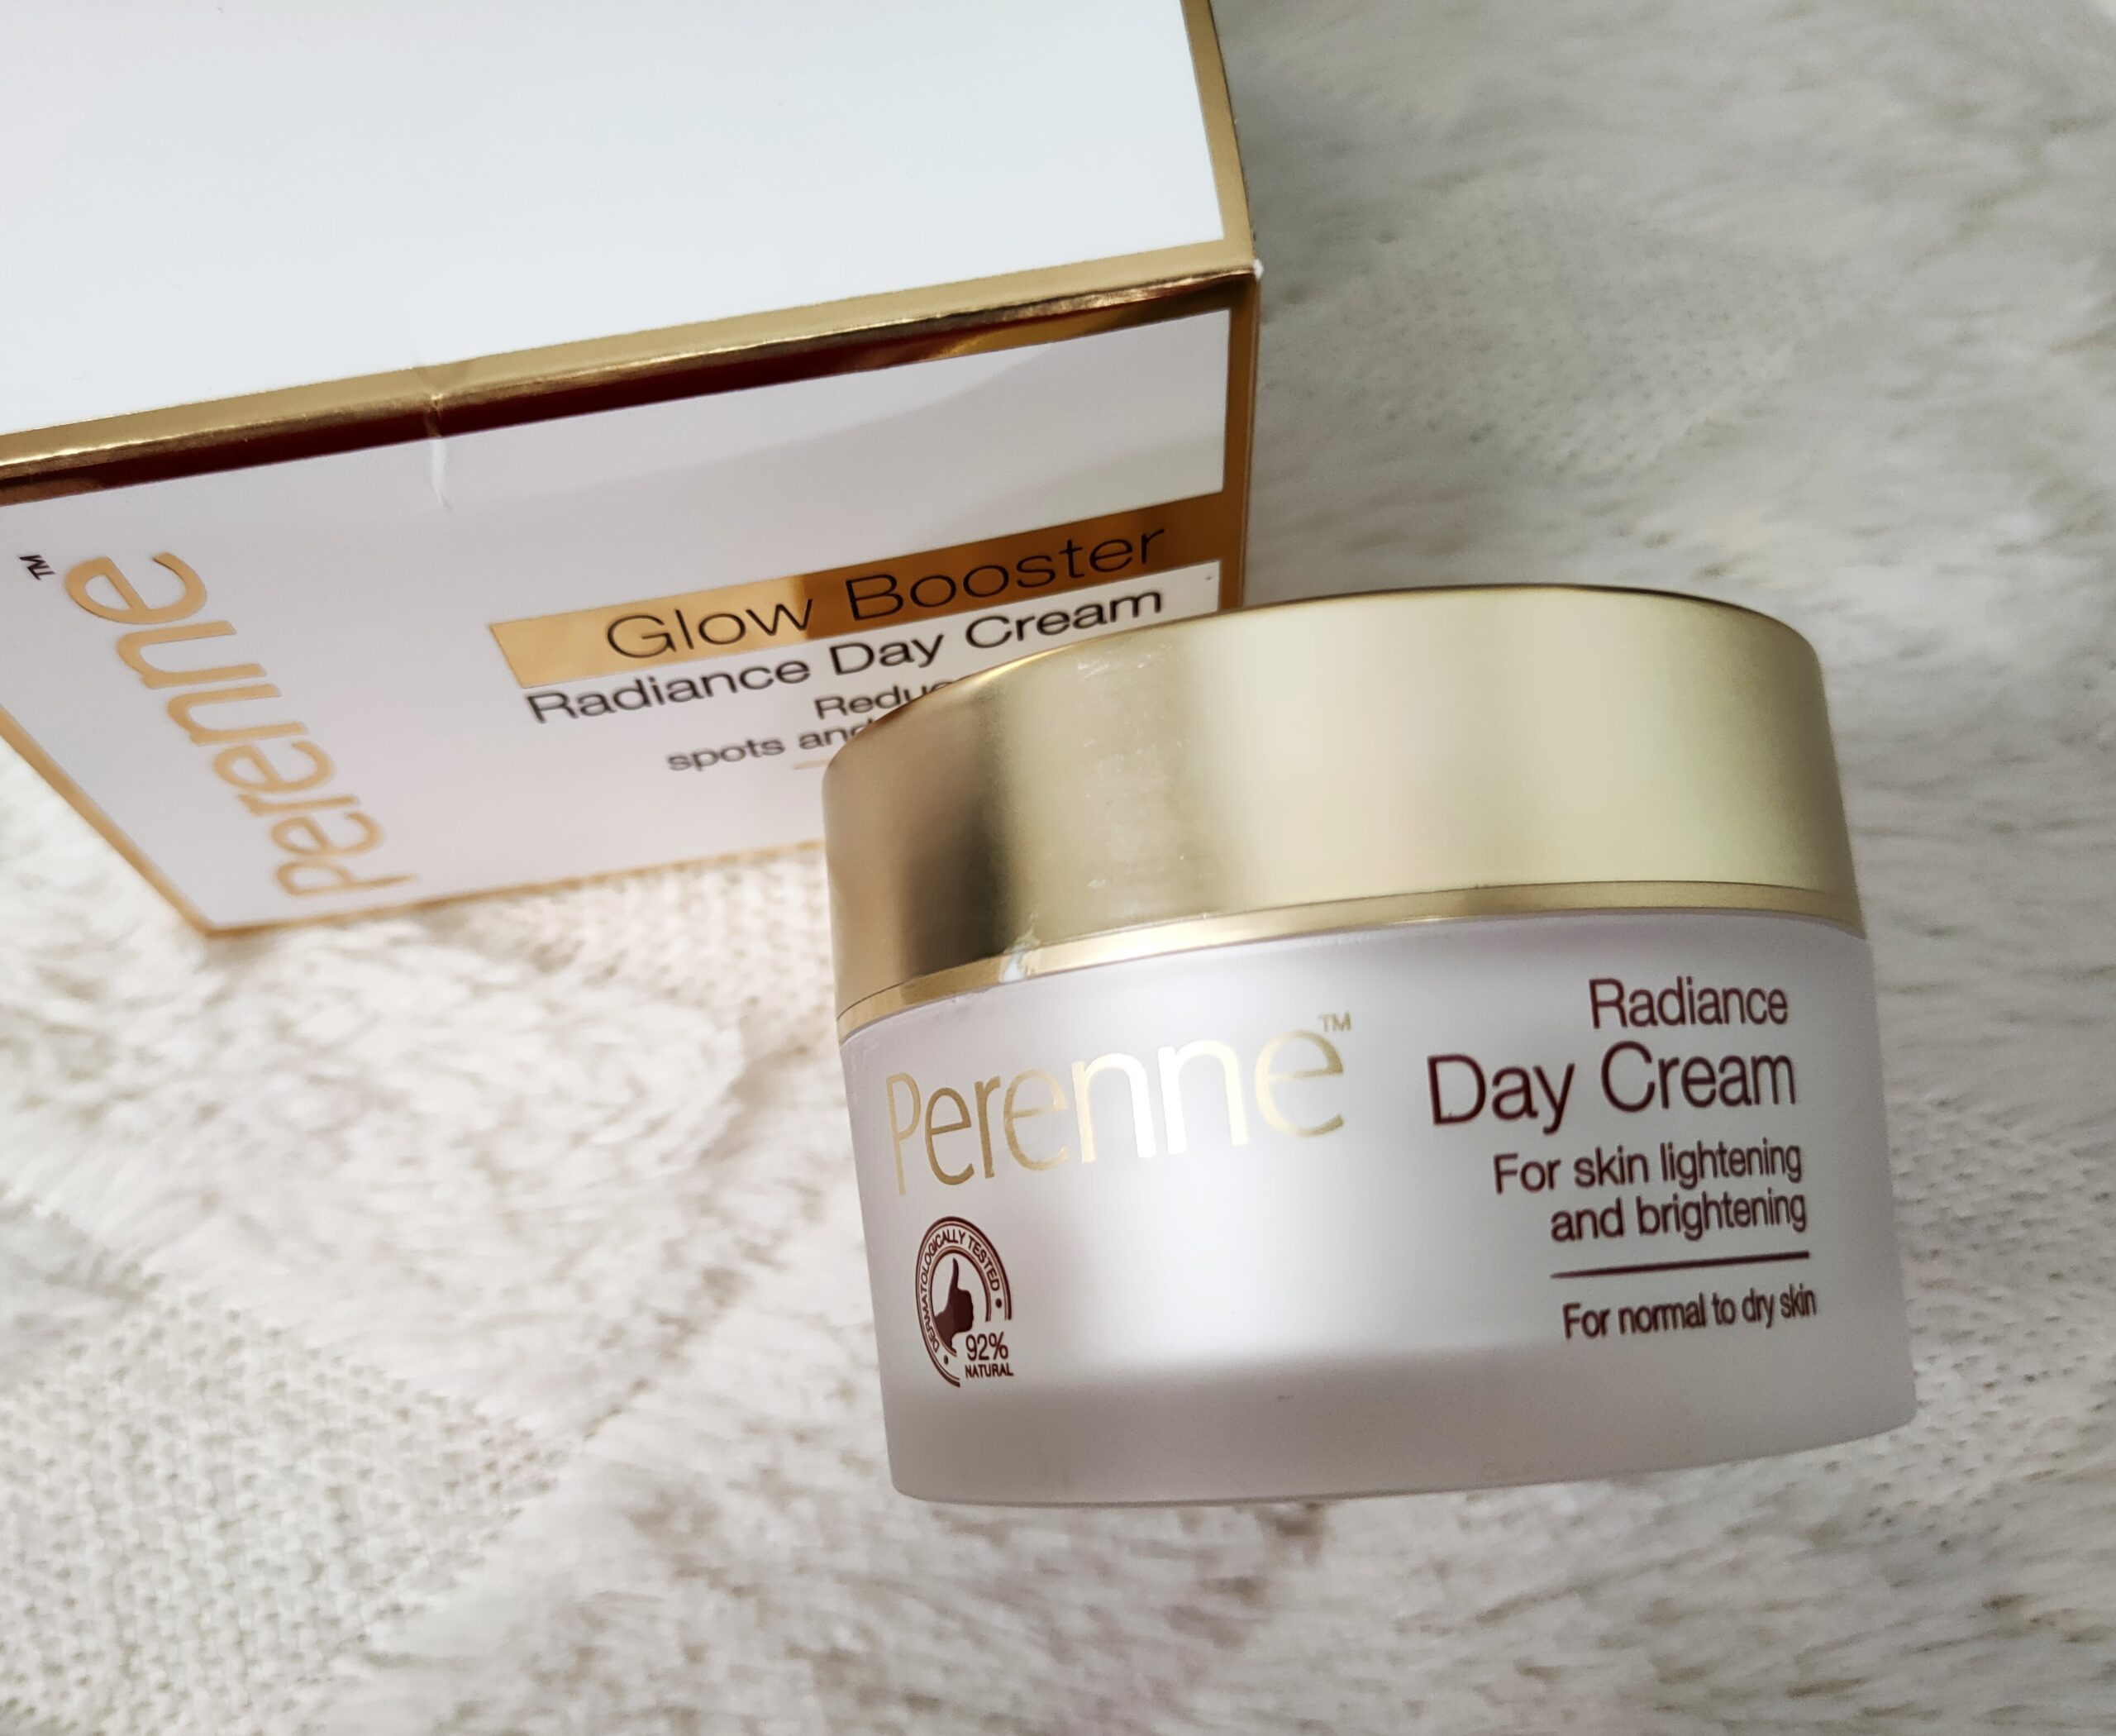 Perenne Glow Booster Radiance Day Cream Review